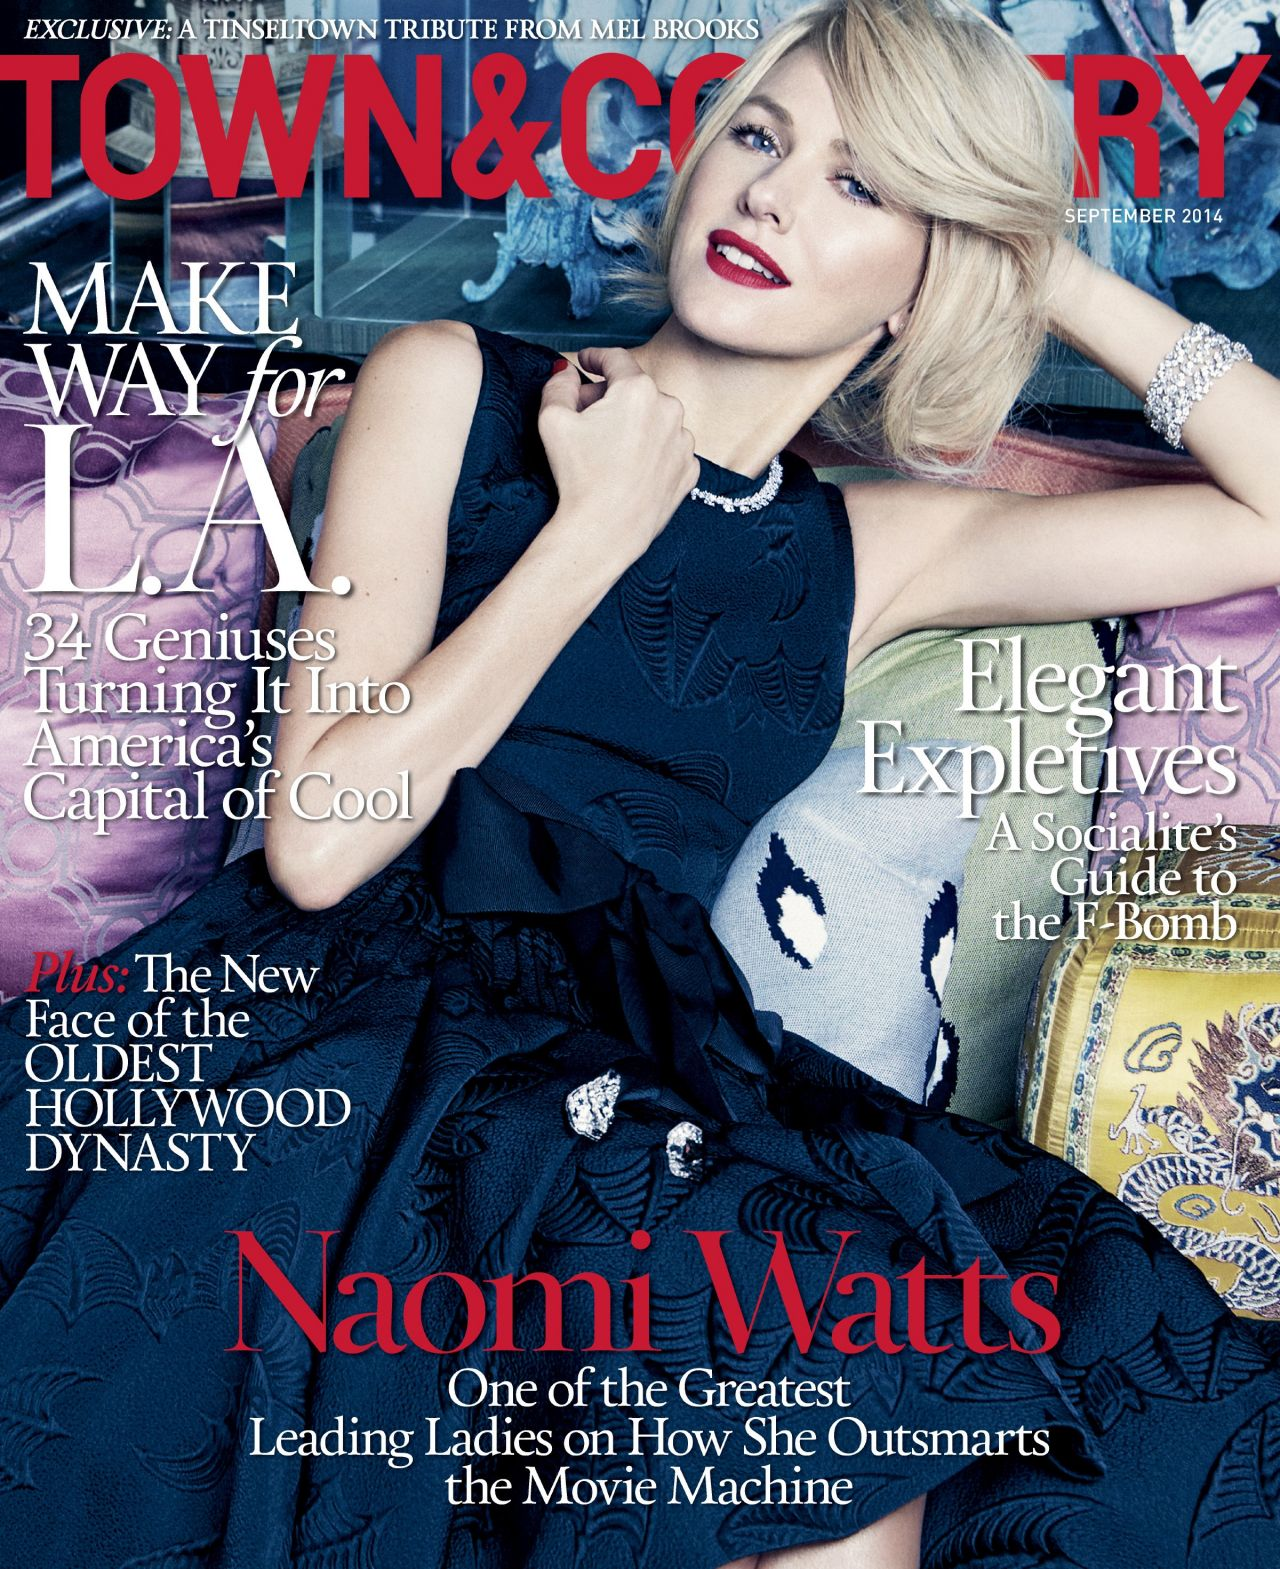 Naomi Watts - Town & Country Magazine - September 2014 Cover